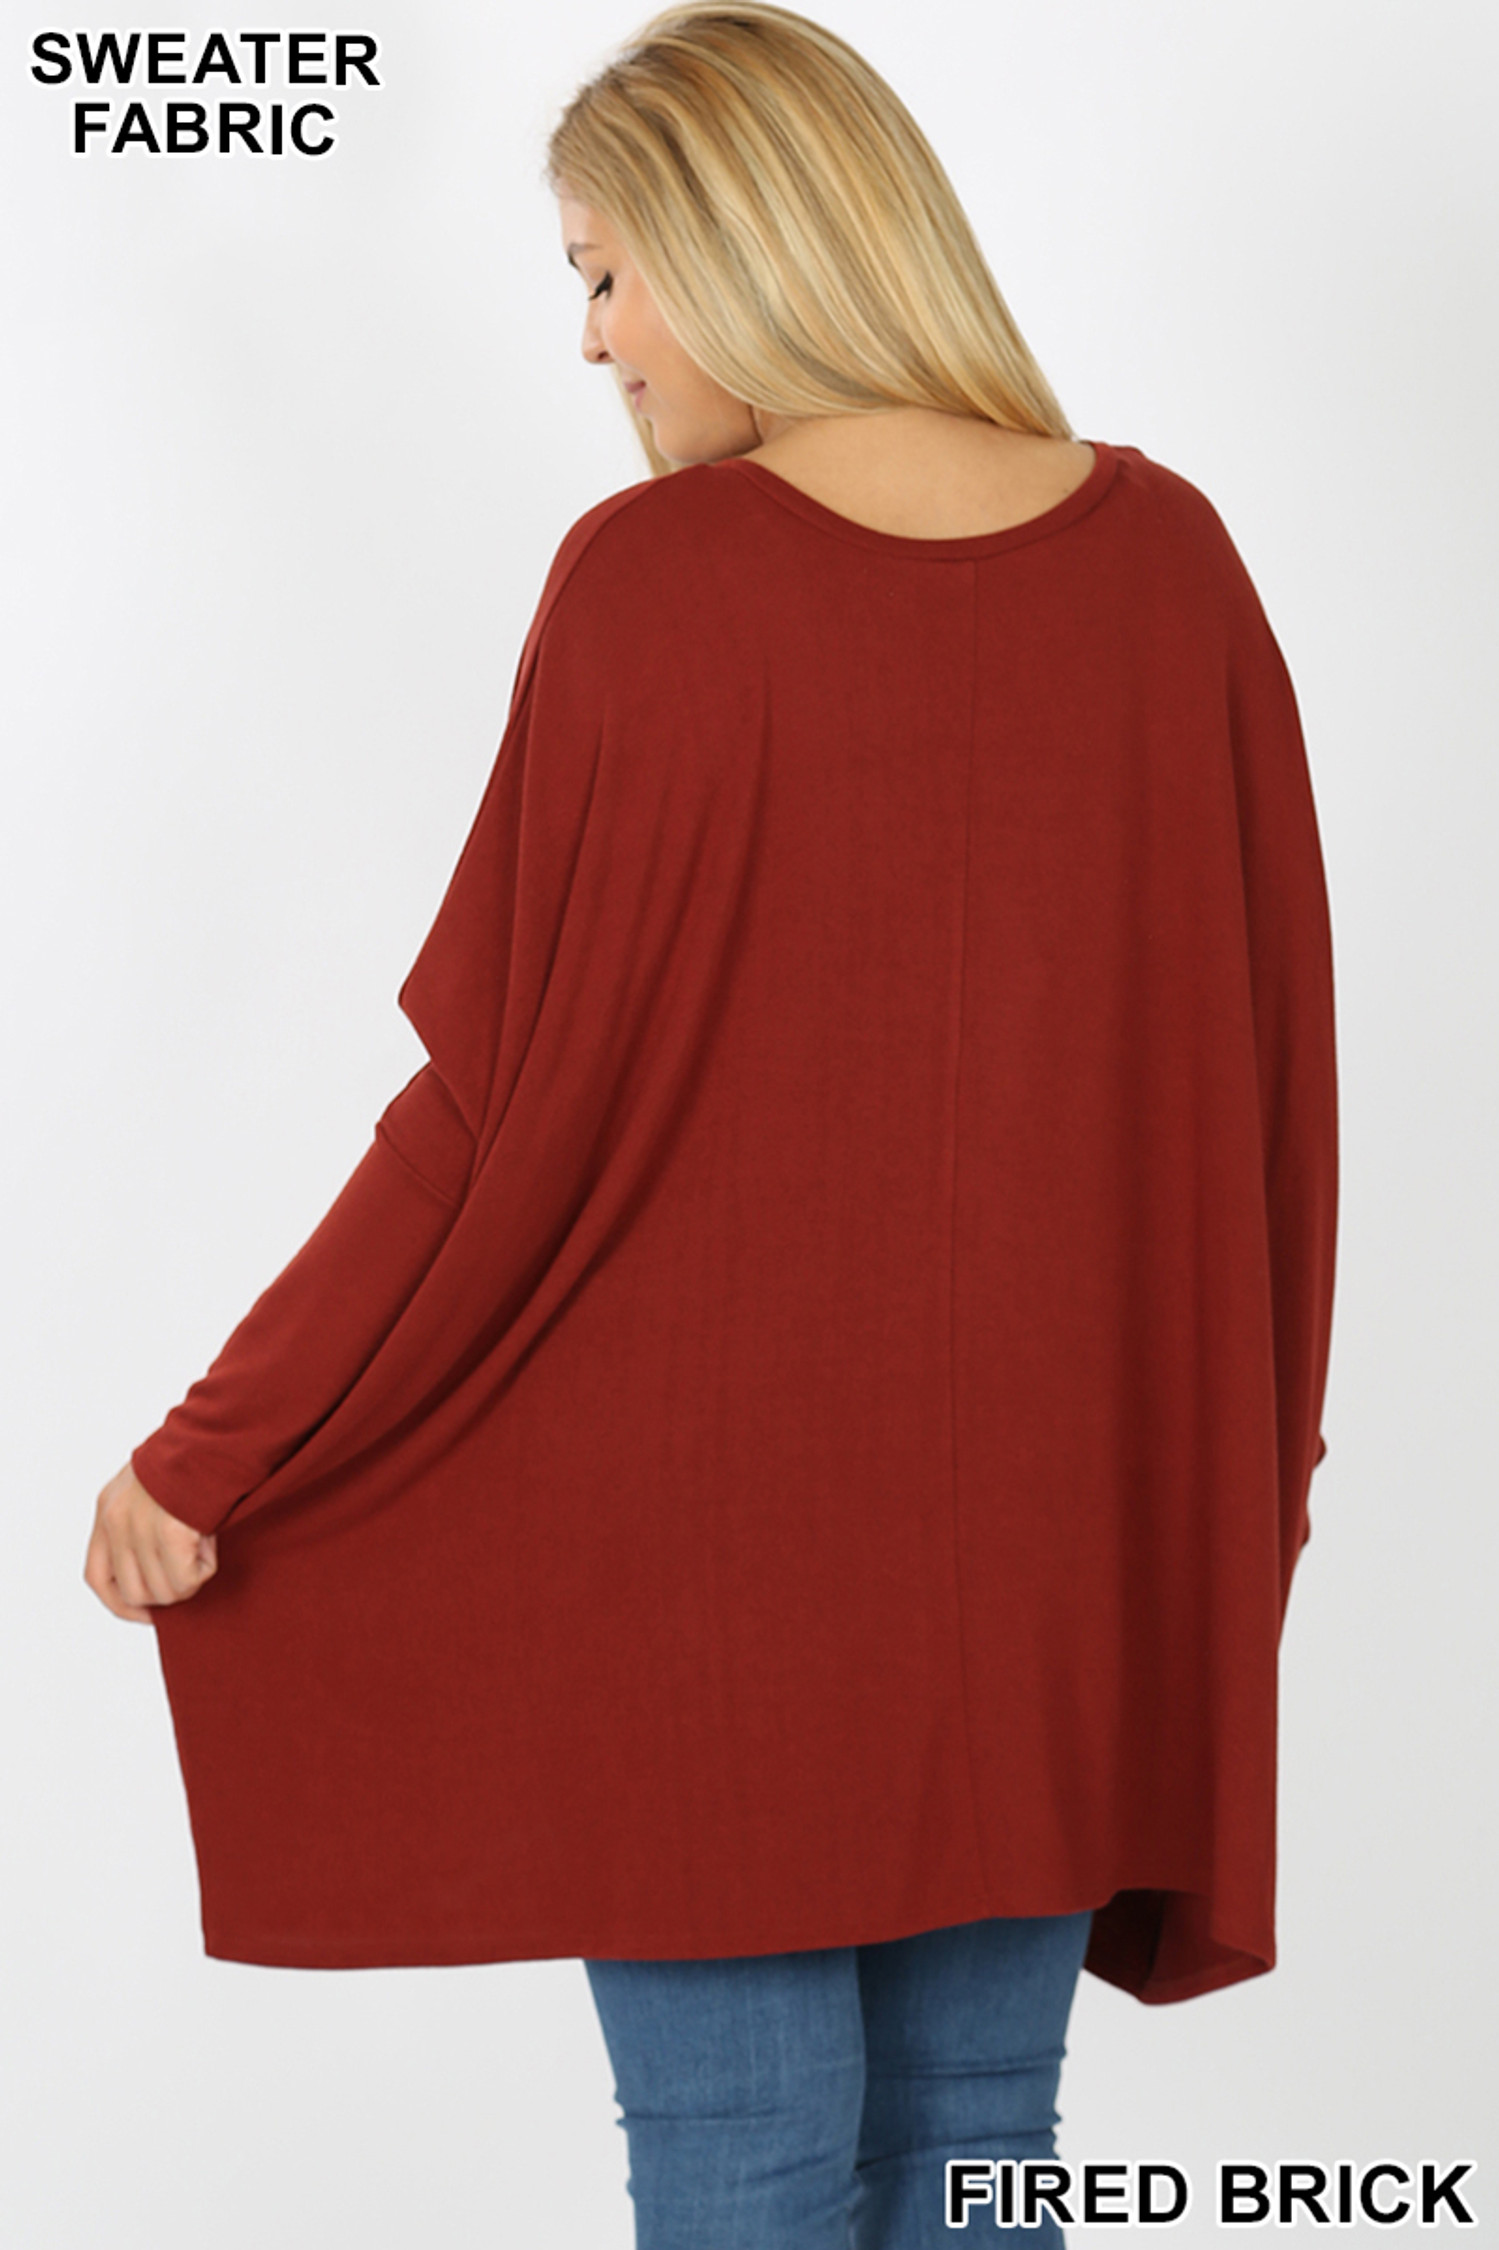 Rear view image of Fired Brick Oversized Round Neck Poncho Plus Size Sweater